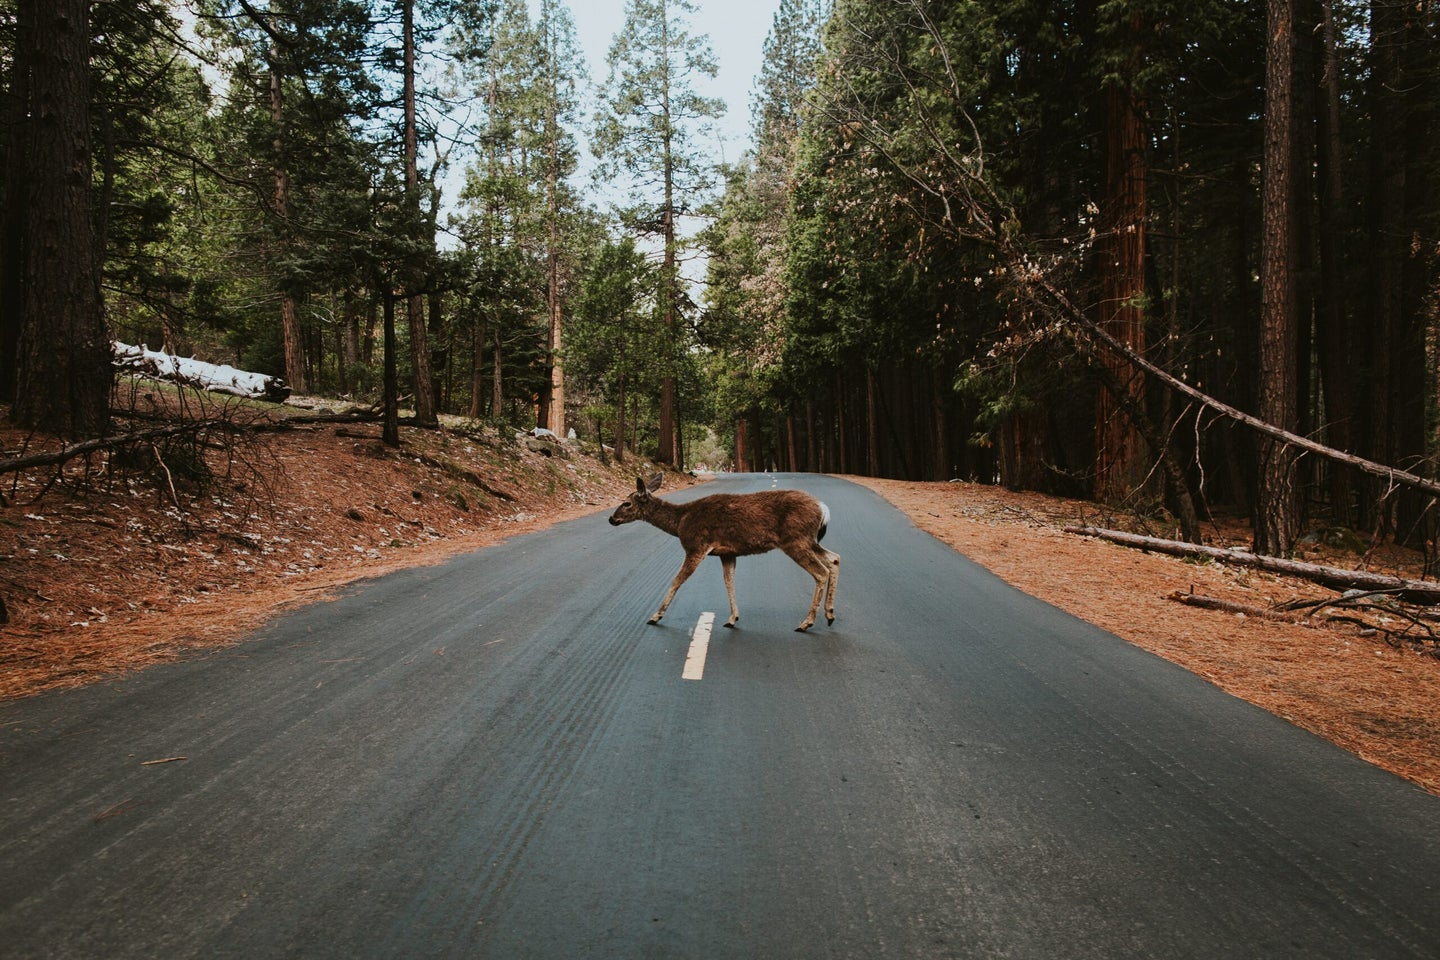 A doe crossing a road in Yosemite National Park